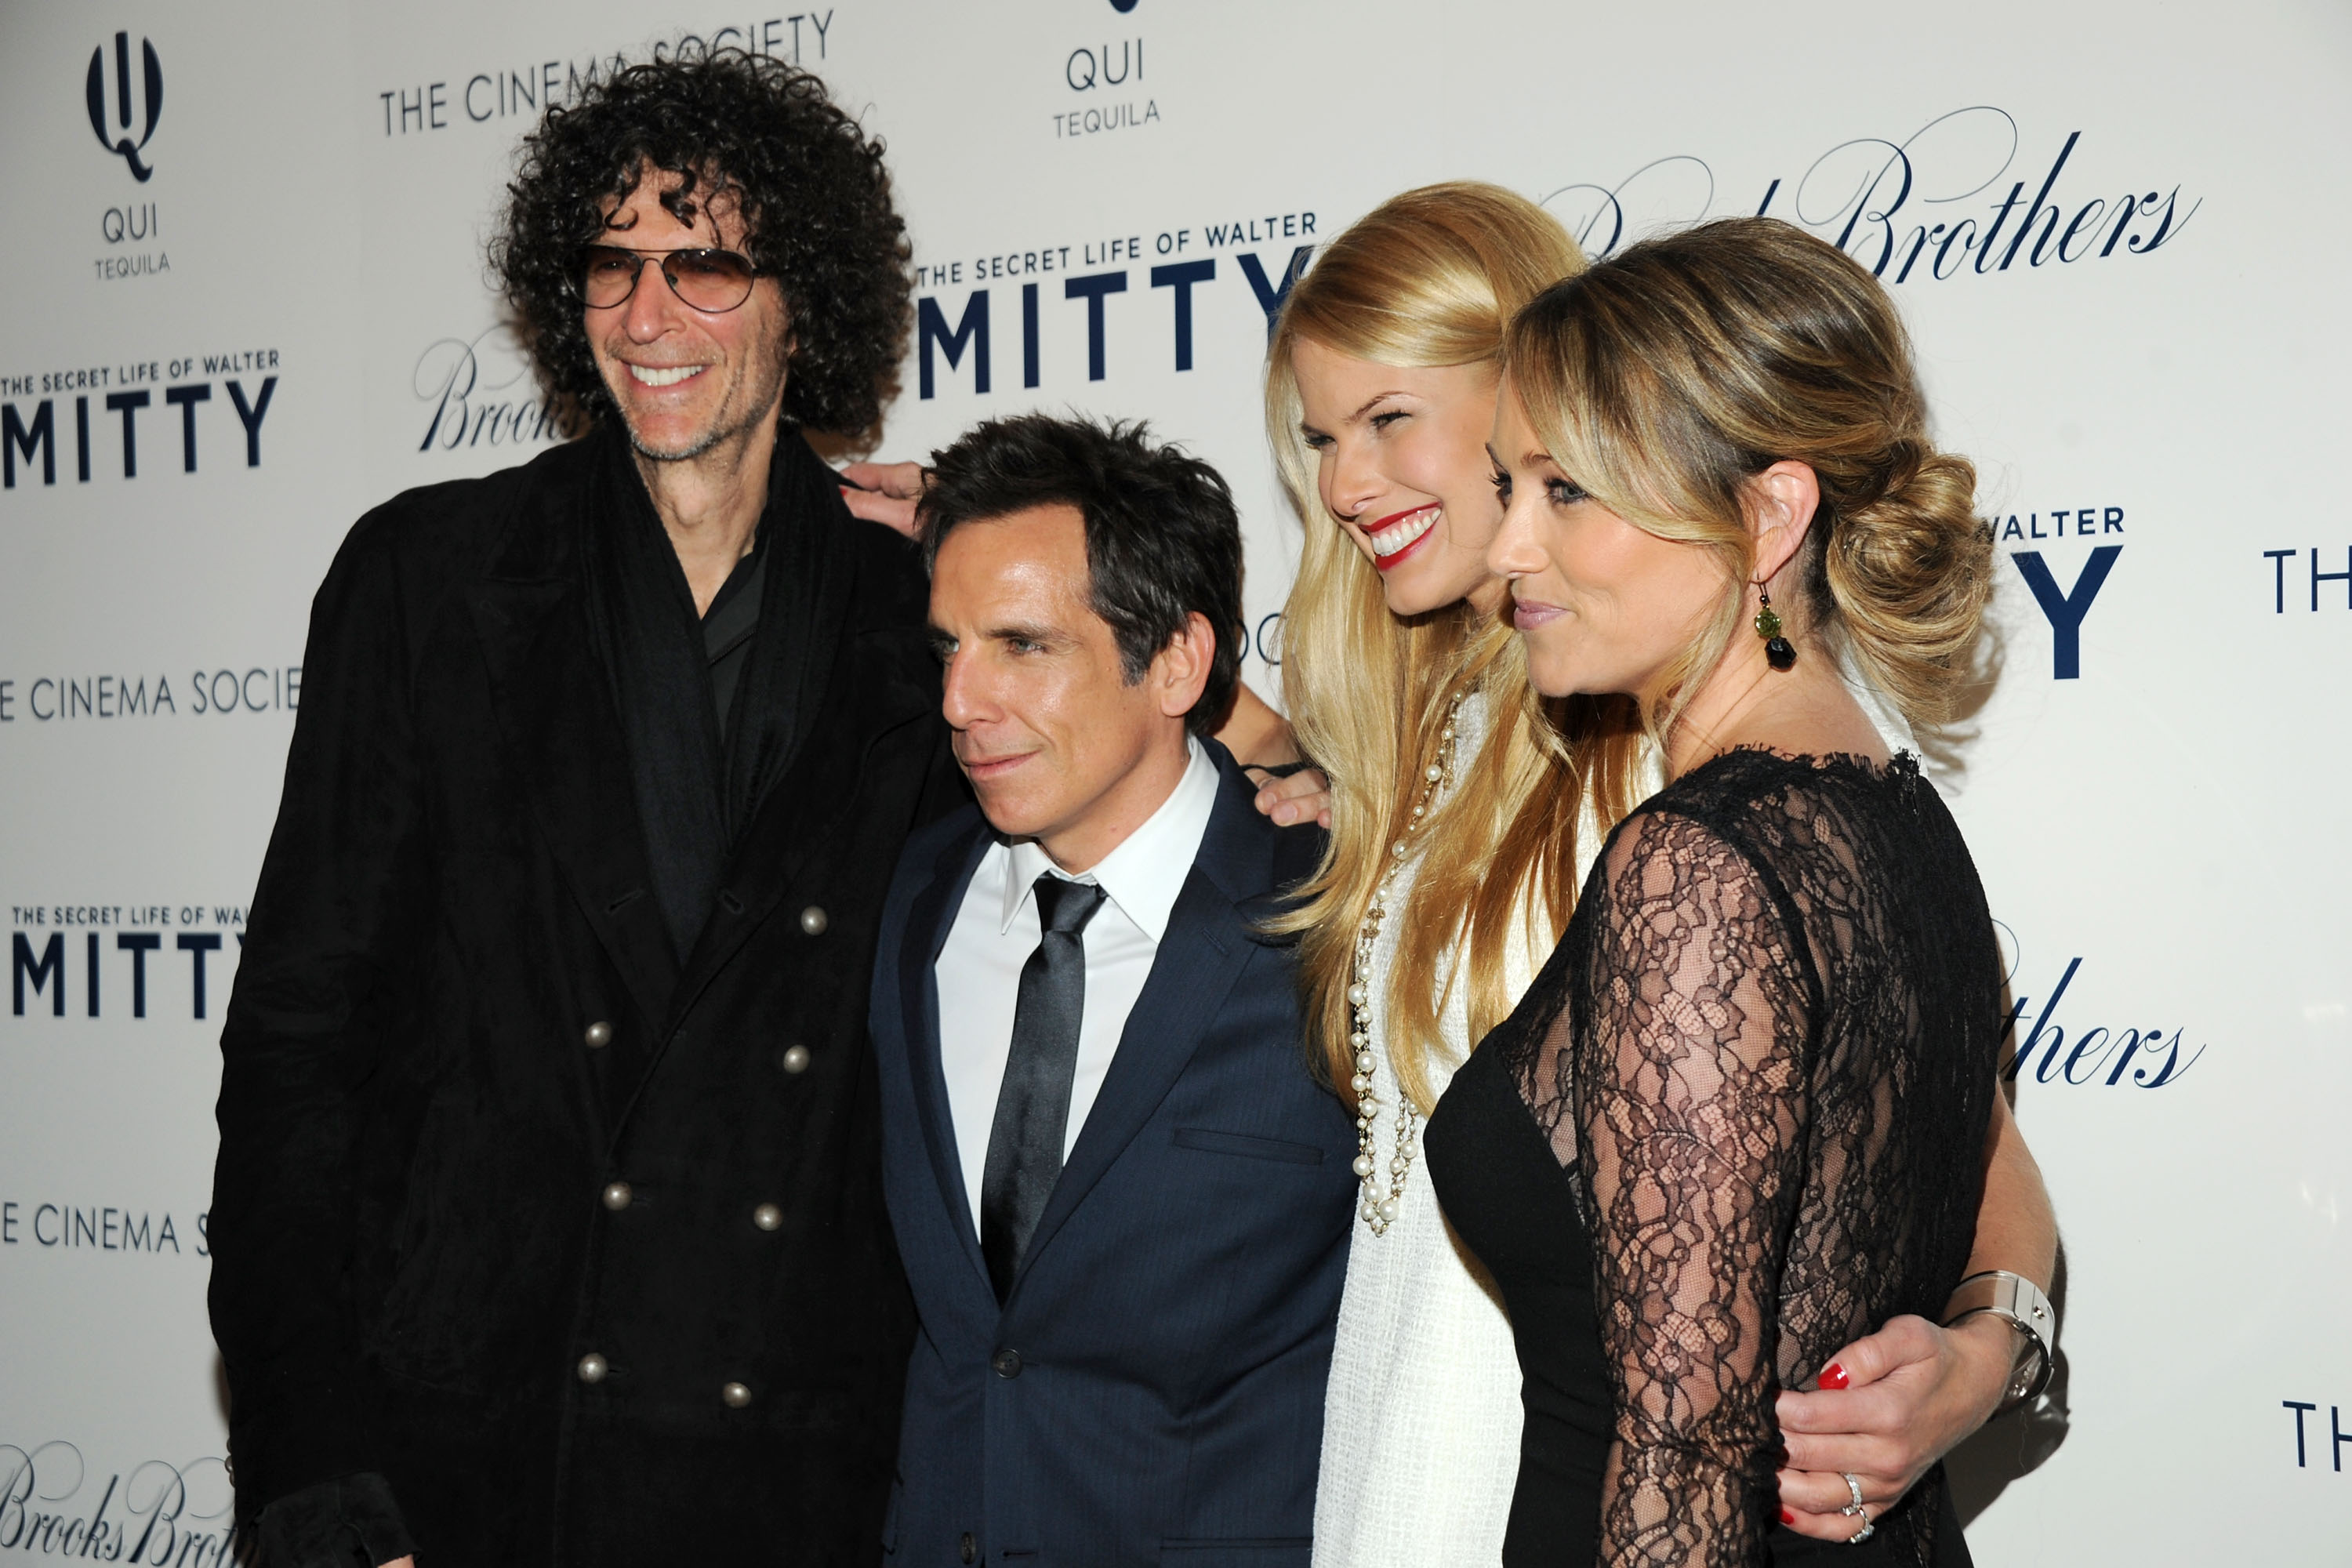 Ben Stiller announced he has prostate cancer, reminding everyone how important health screenings are